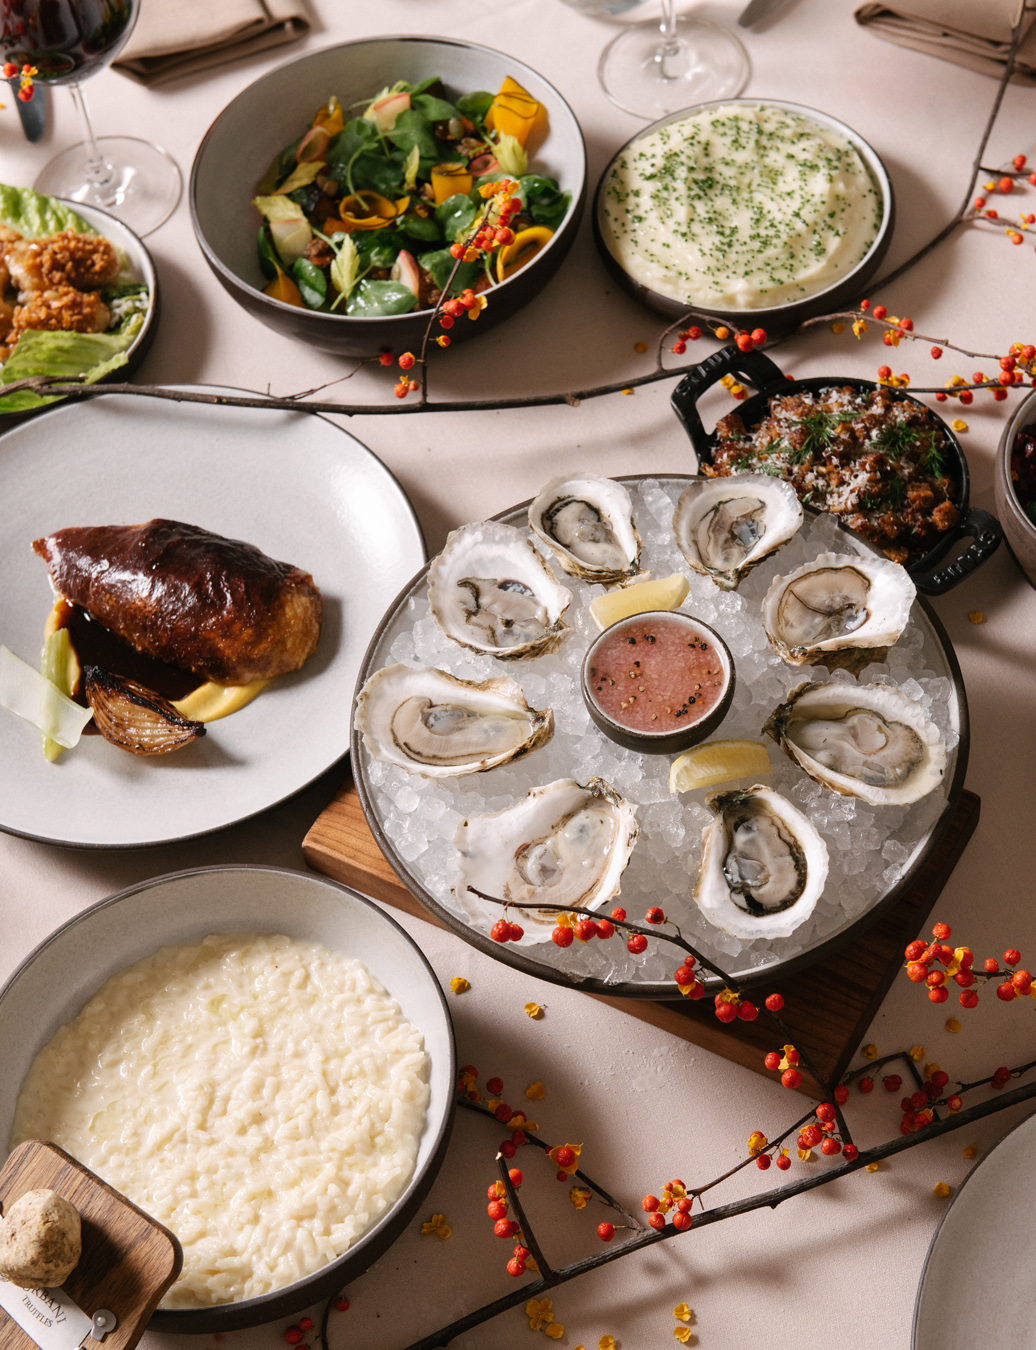 Overhead view of plate of oysters on ice, chicken entree, and other appetizers